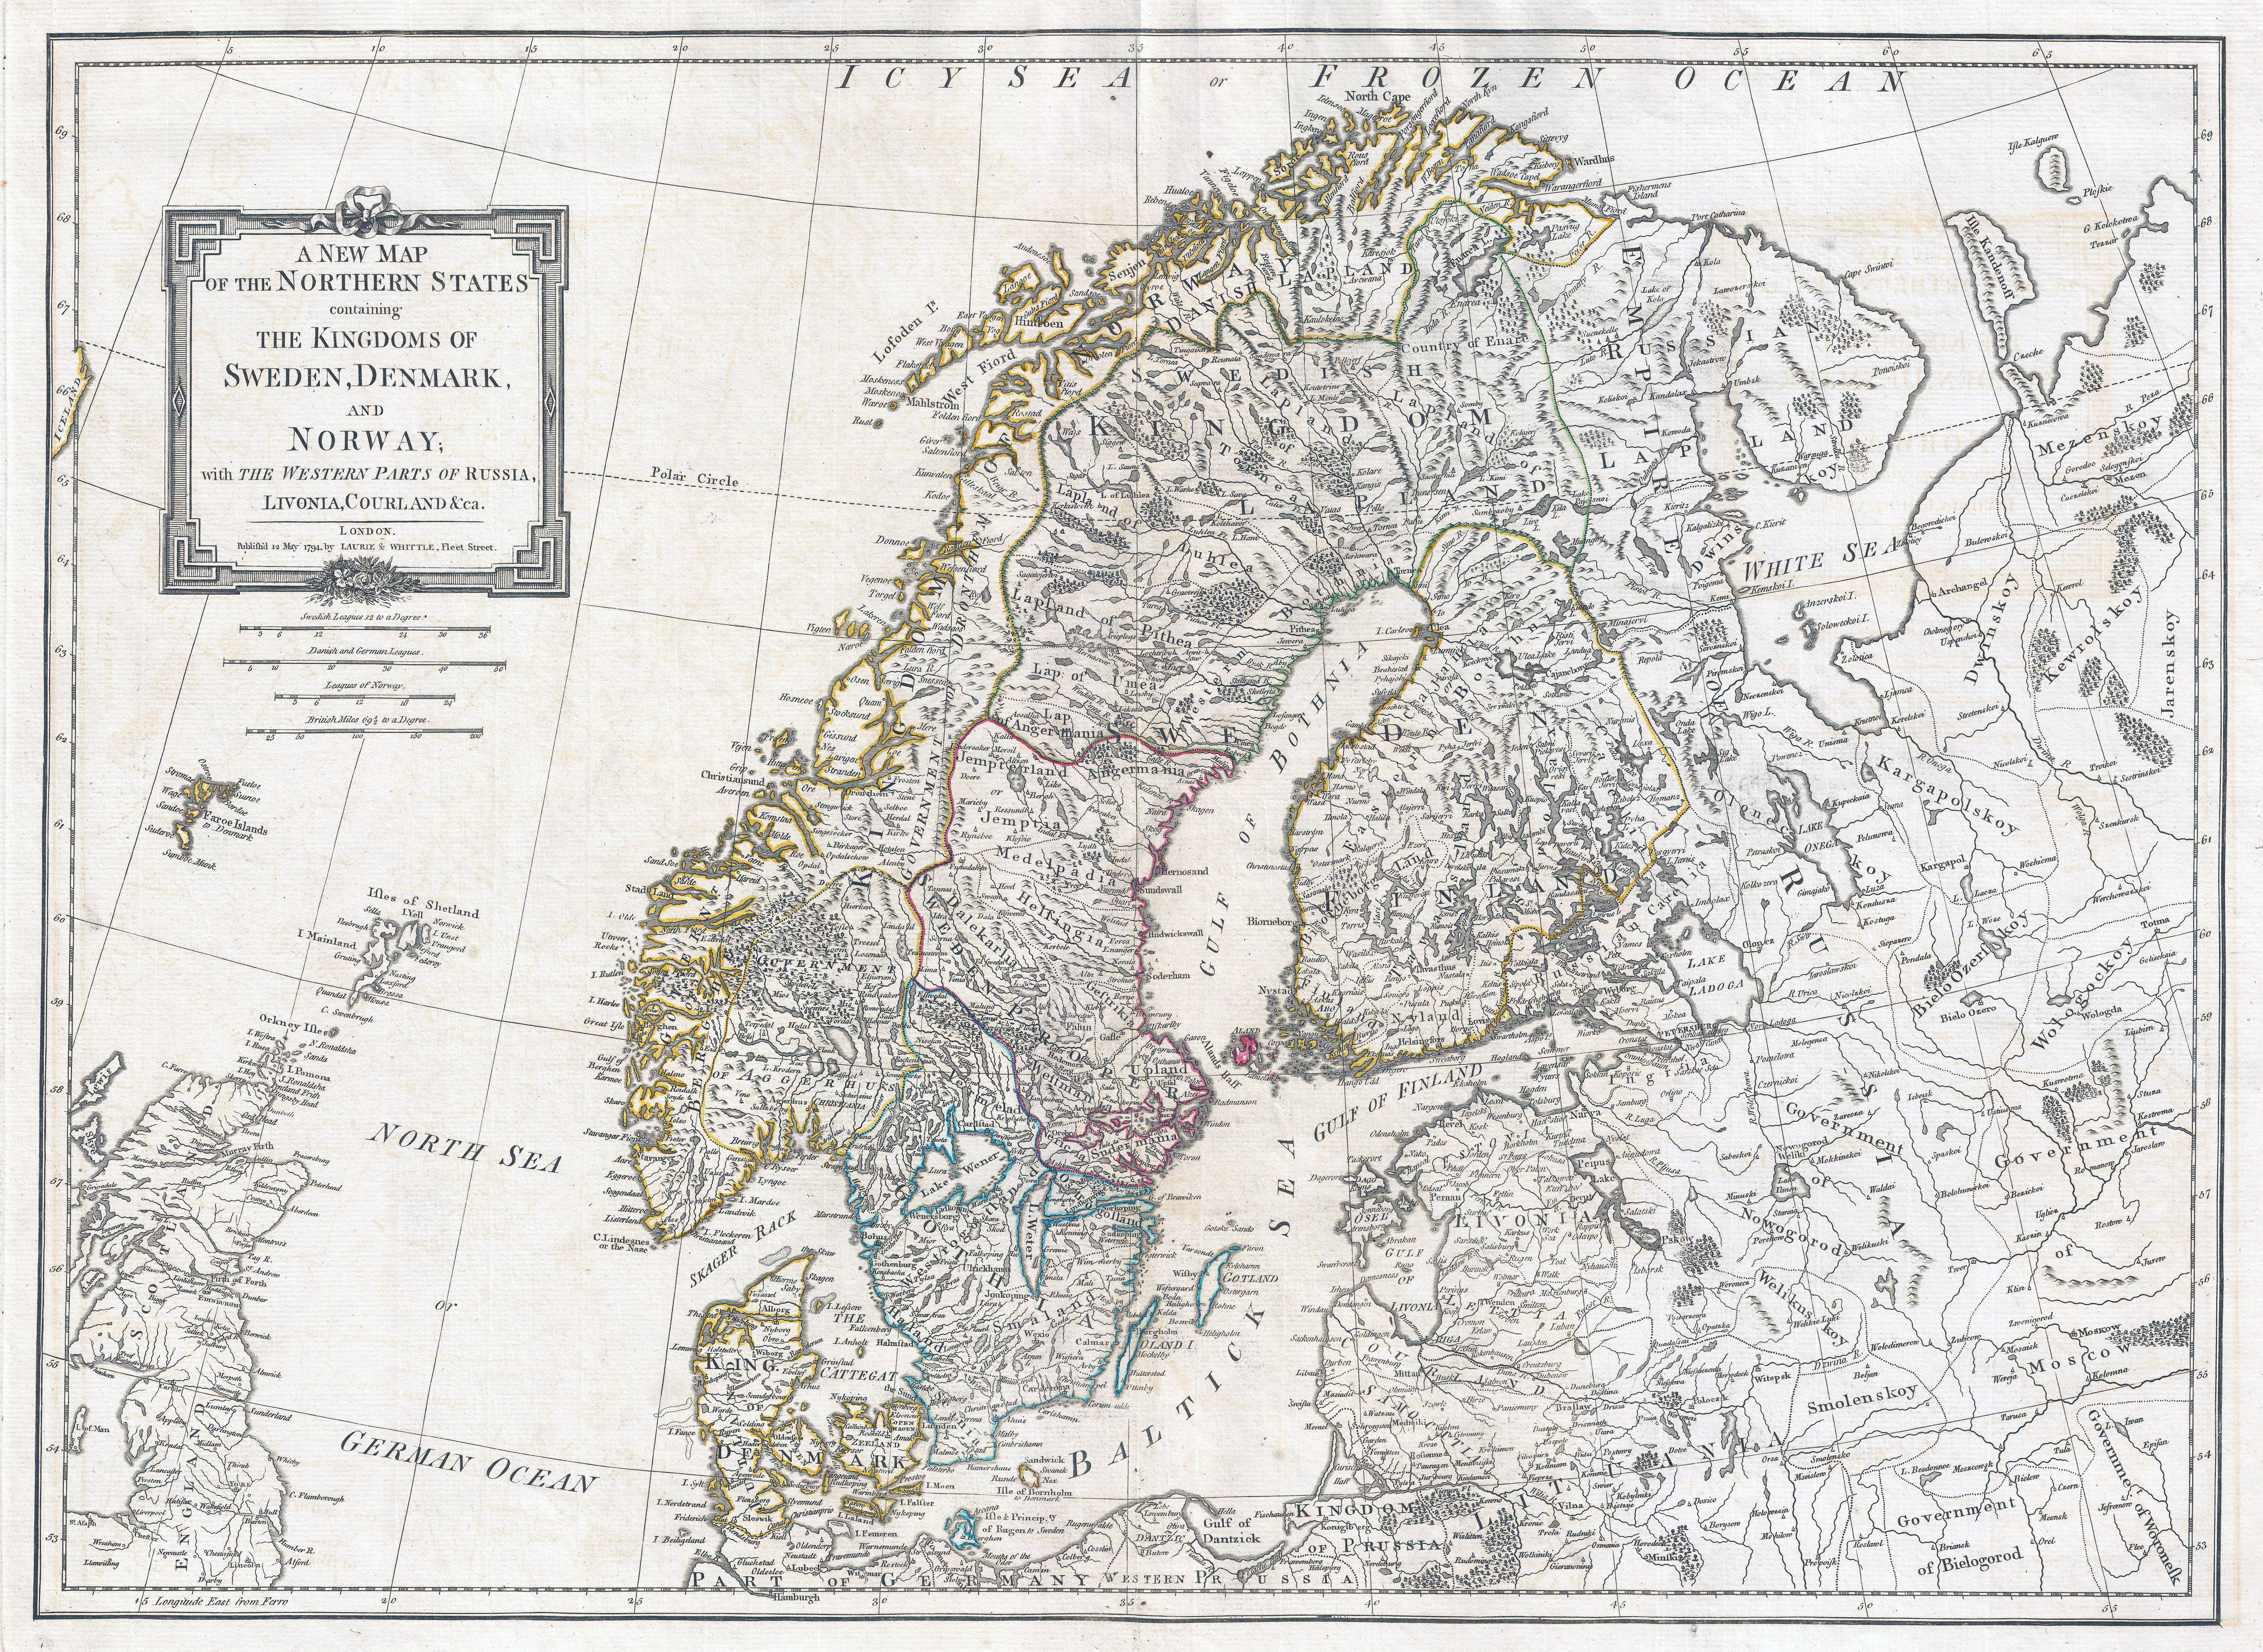 Large Detailed Old Map Of Norway Sweden Denmark And Finland - Norway map detailed